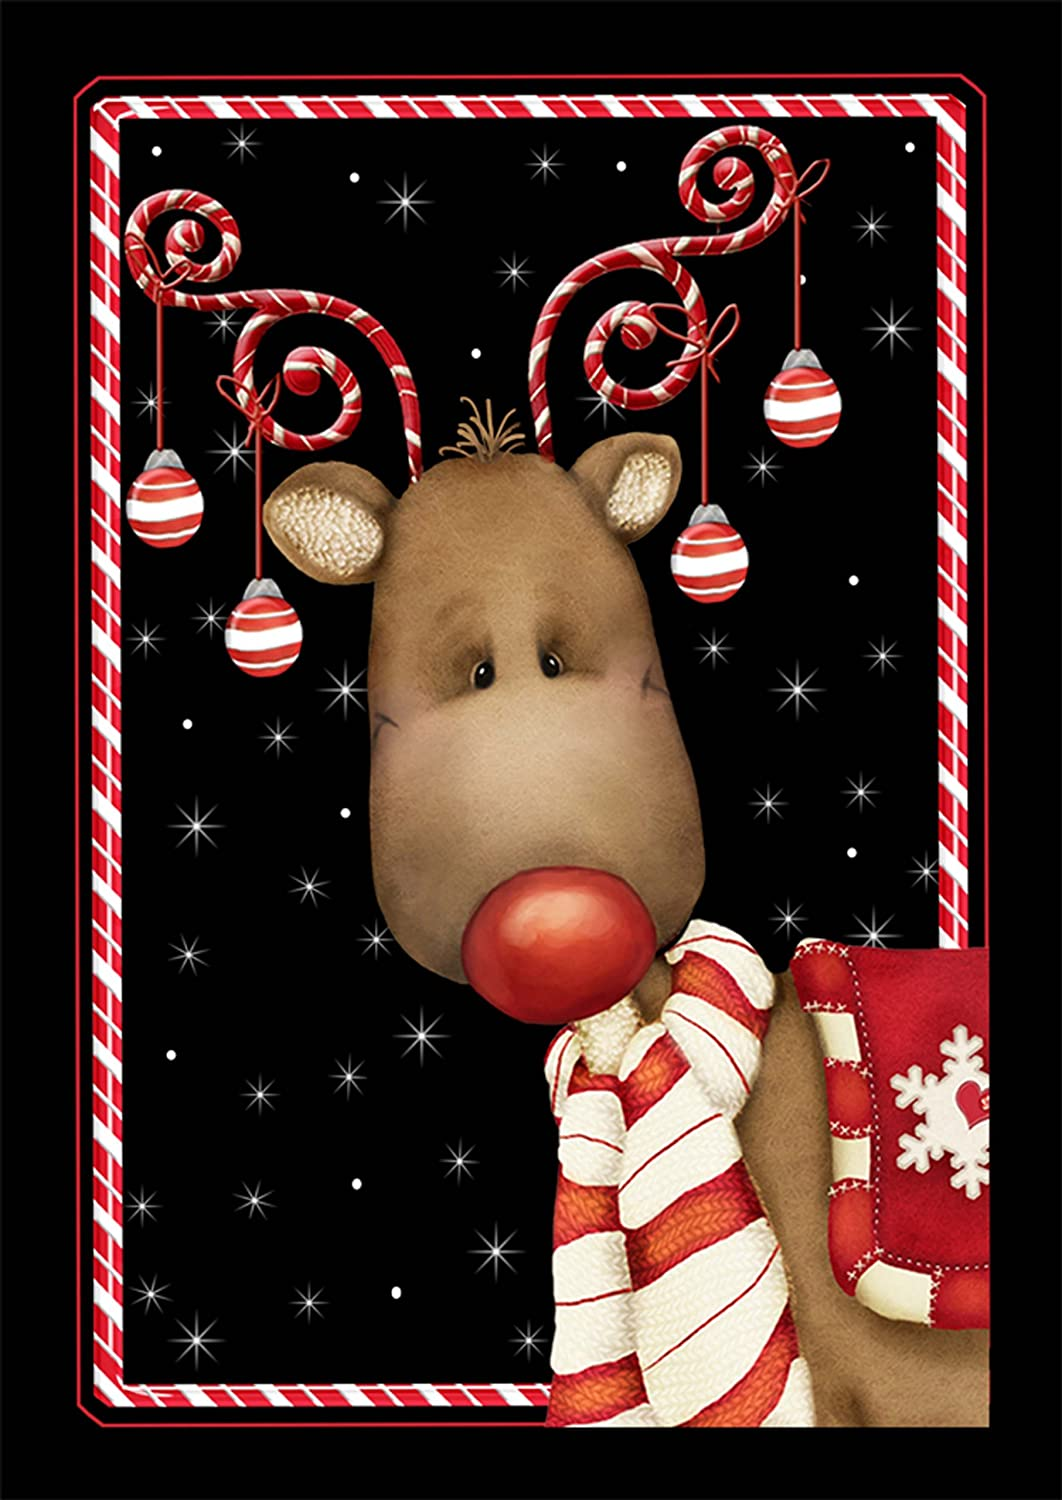 candy cane reindeer flag Image Amazon